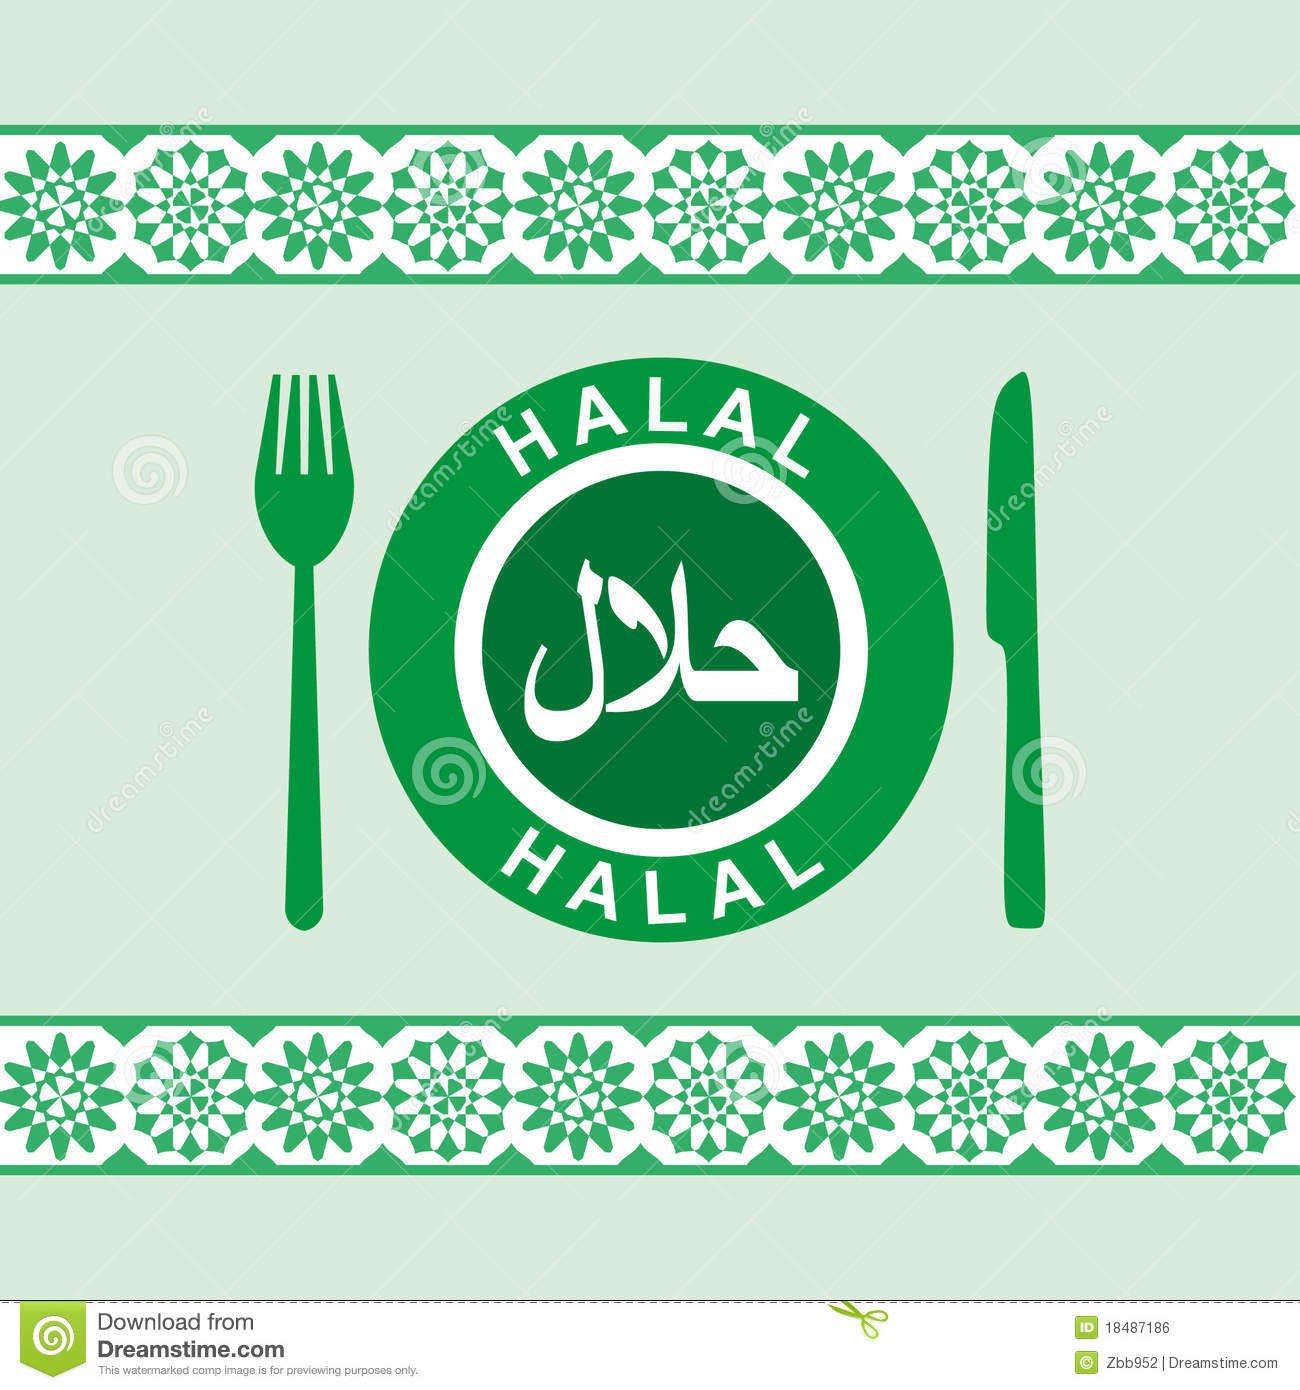 Halal Plate Knife And Fork Royalty Free Stock Image  : halal plate knife fork 18487186 from www.dreamstime.com size 1300 x 1390 jpeg 196kB